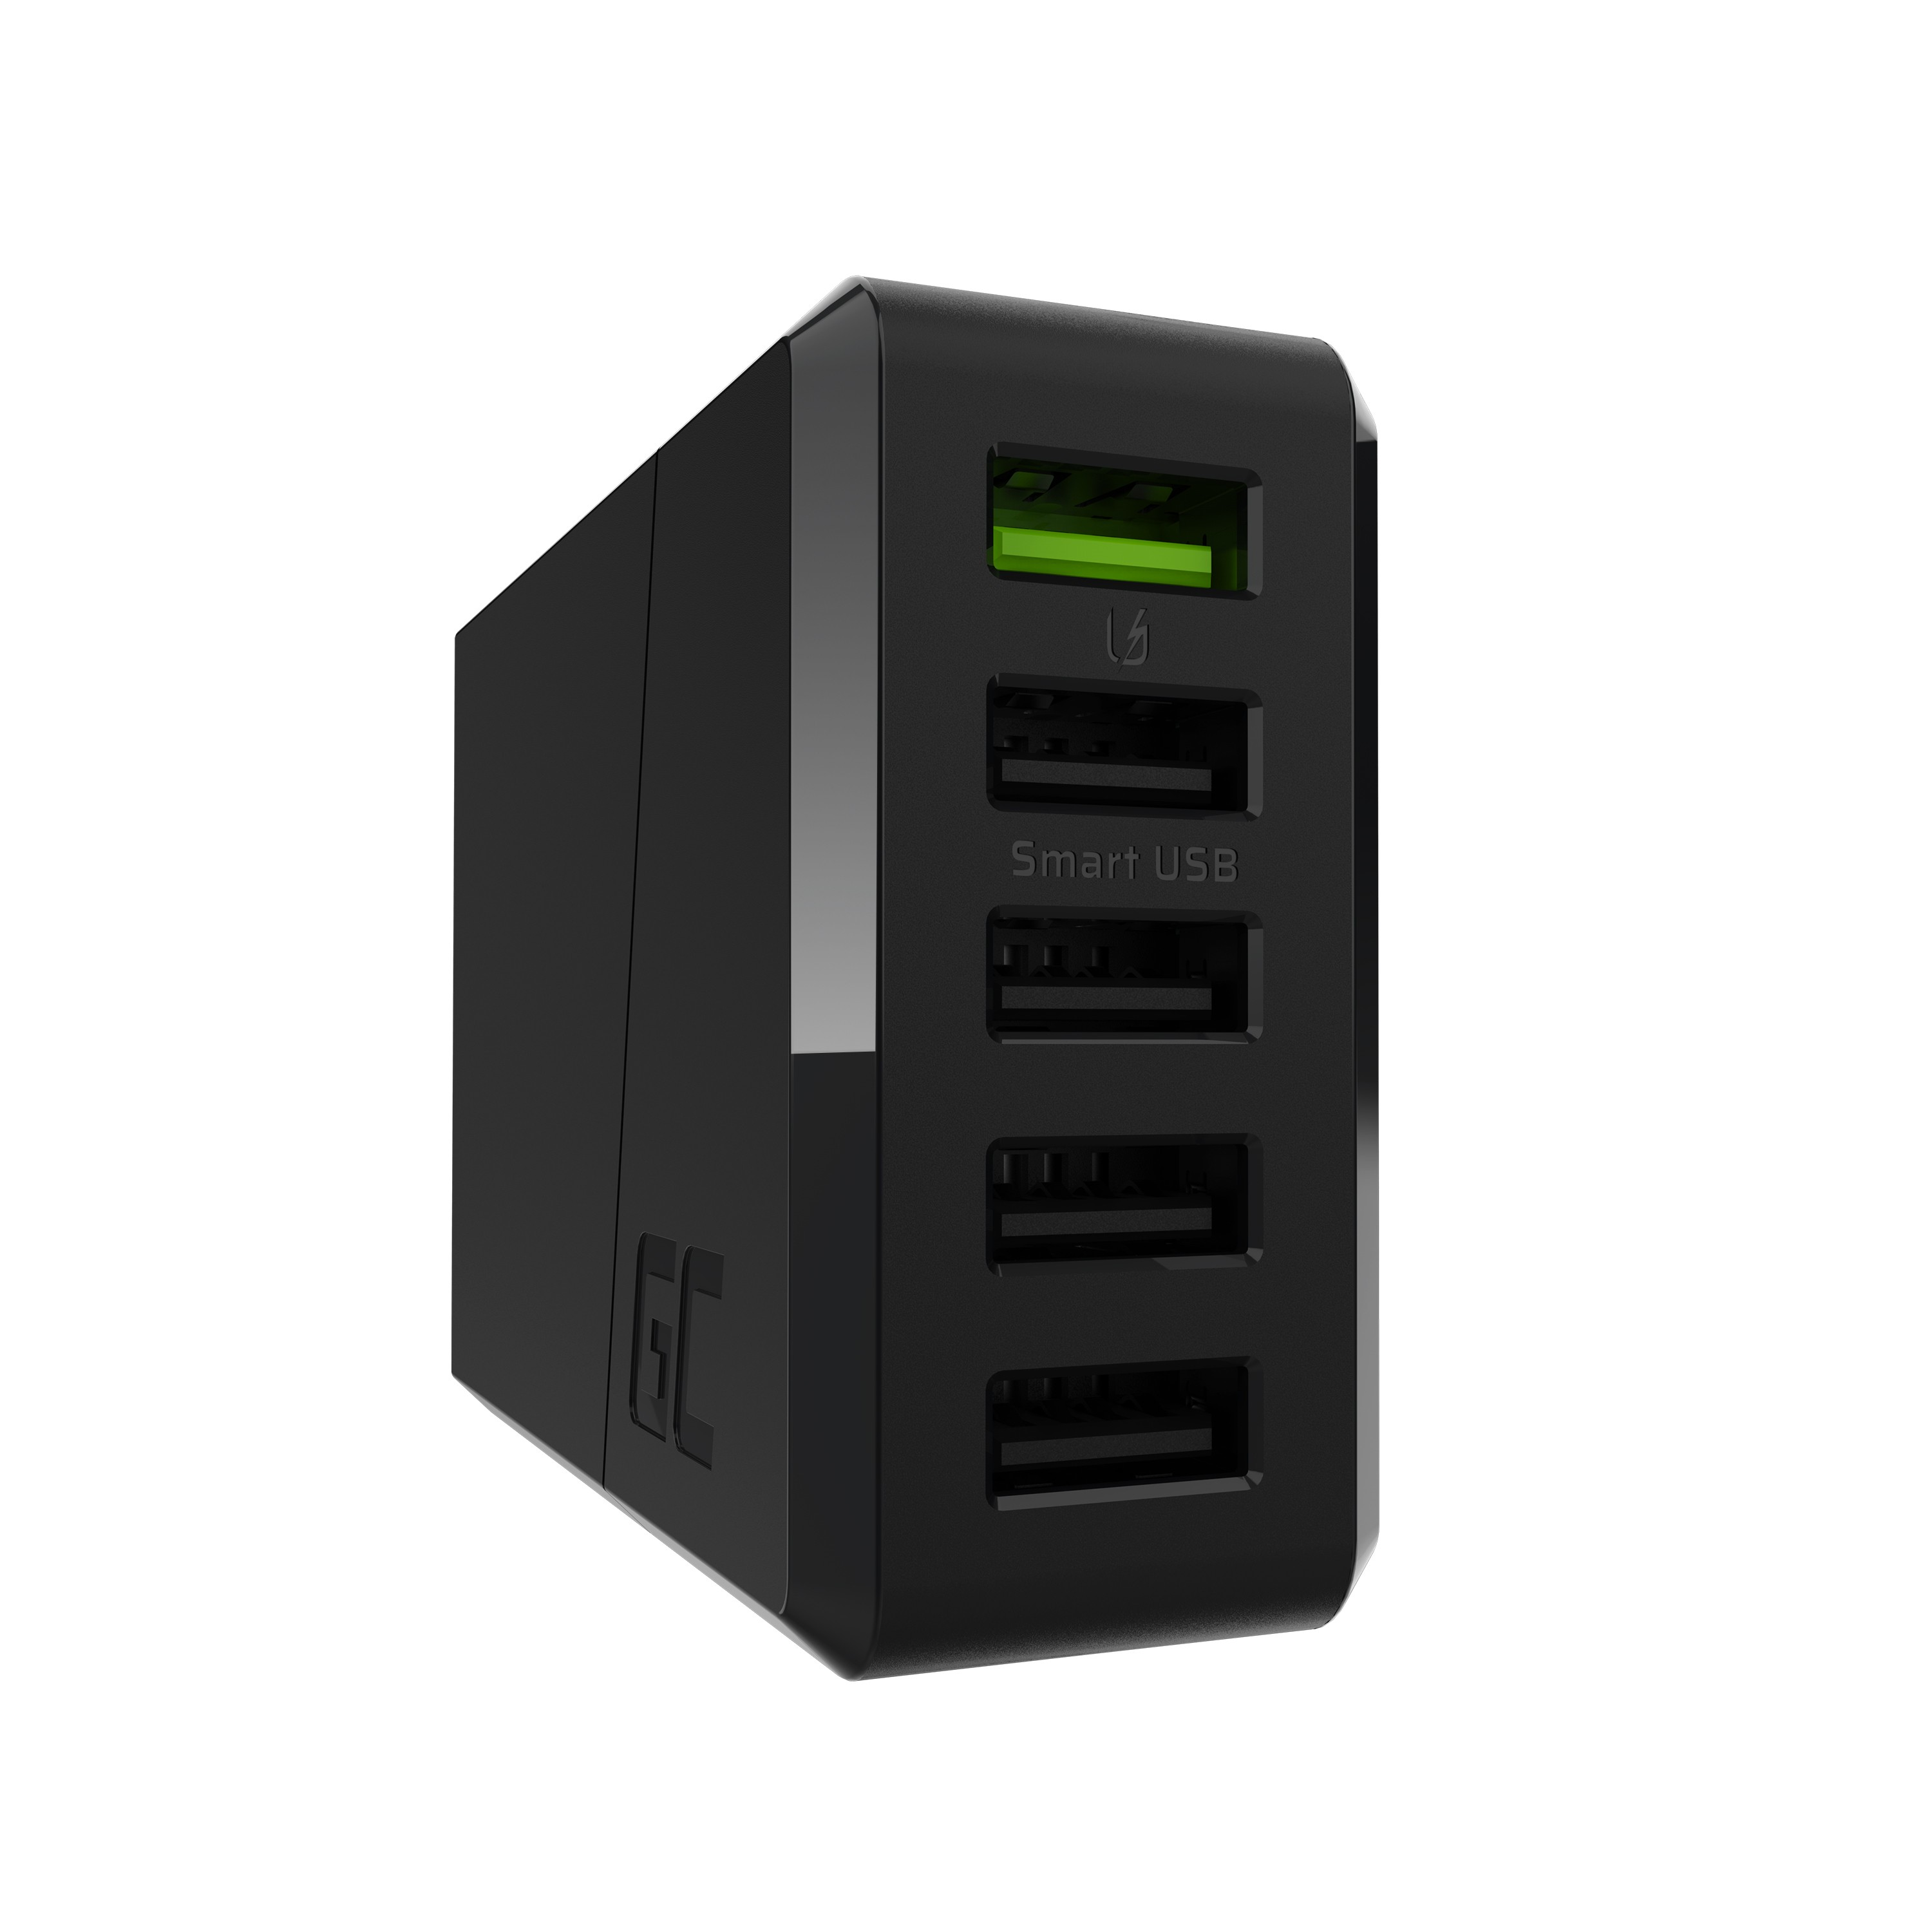 3-portars laddare GC ChargeSource 5 5xUSB 52W med ultraladdning och smart laddning